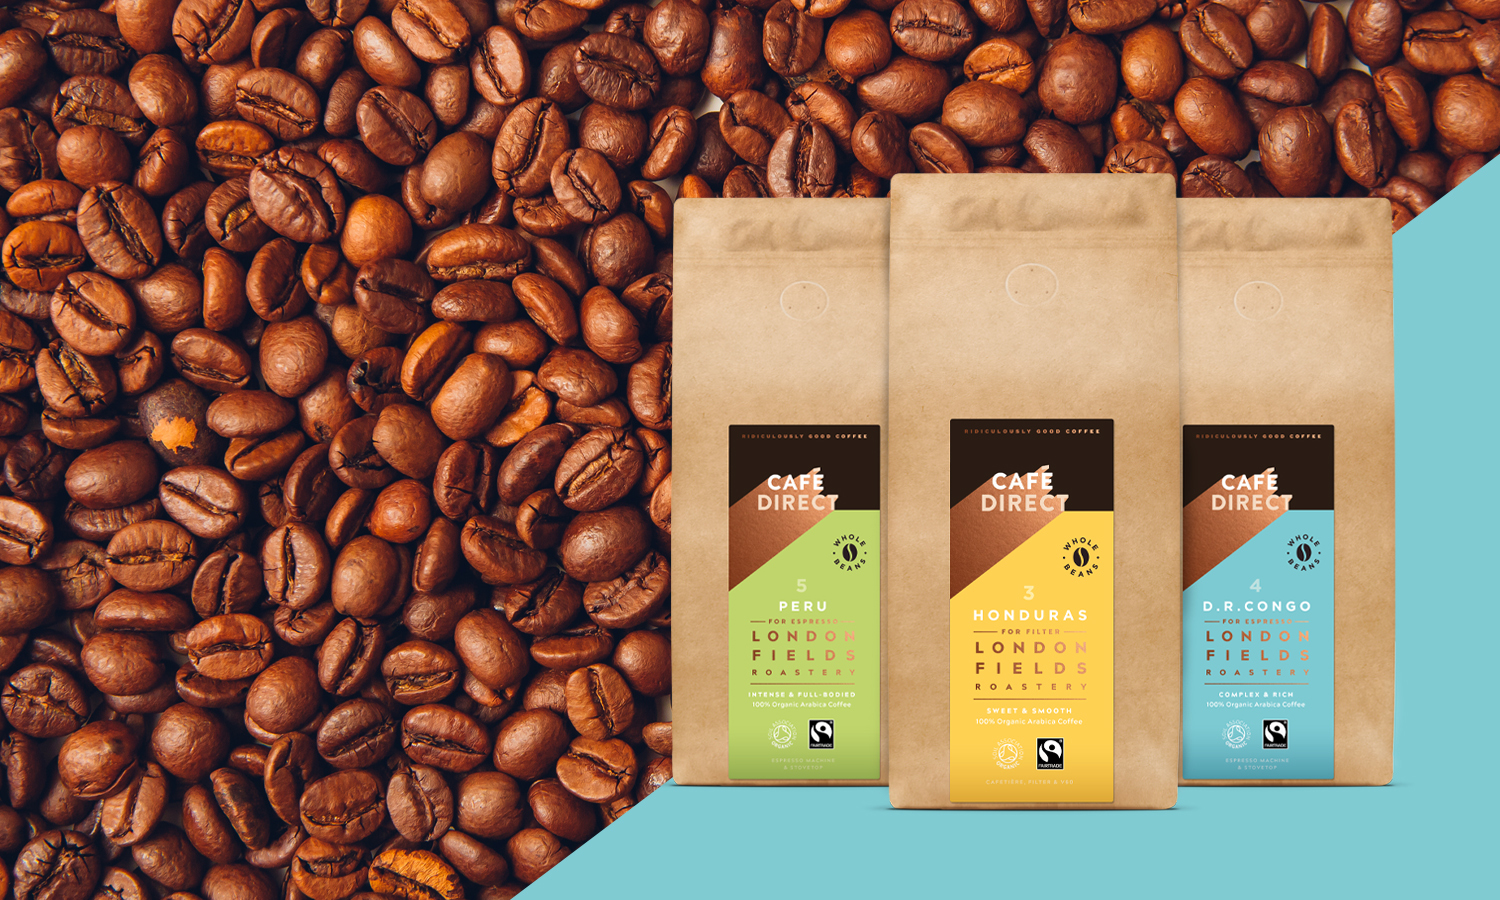 Two kilograms of coffee for £20 from Cafédirect